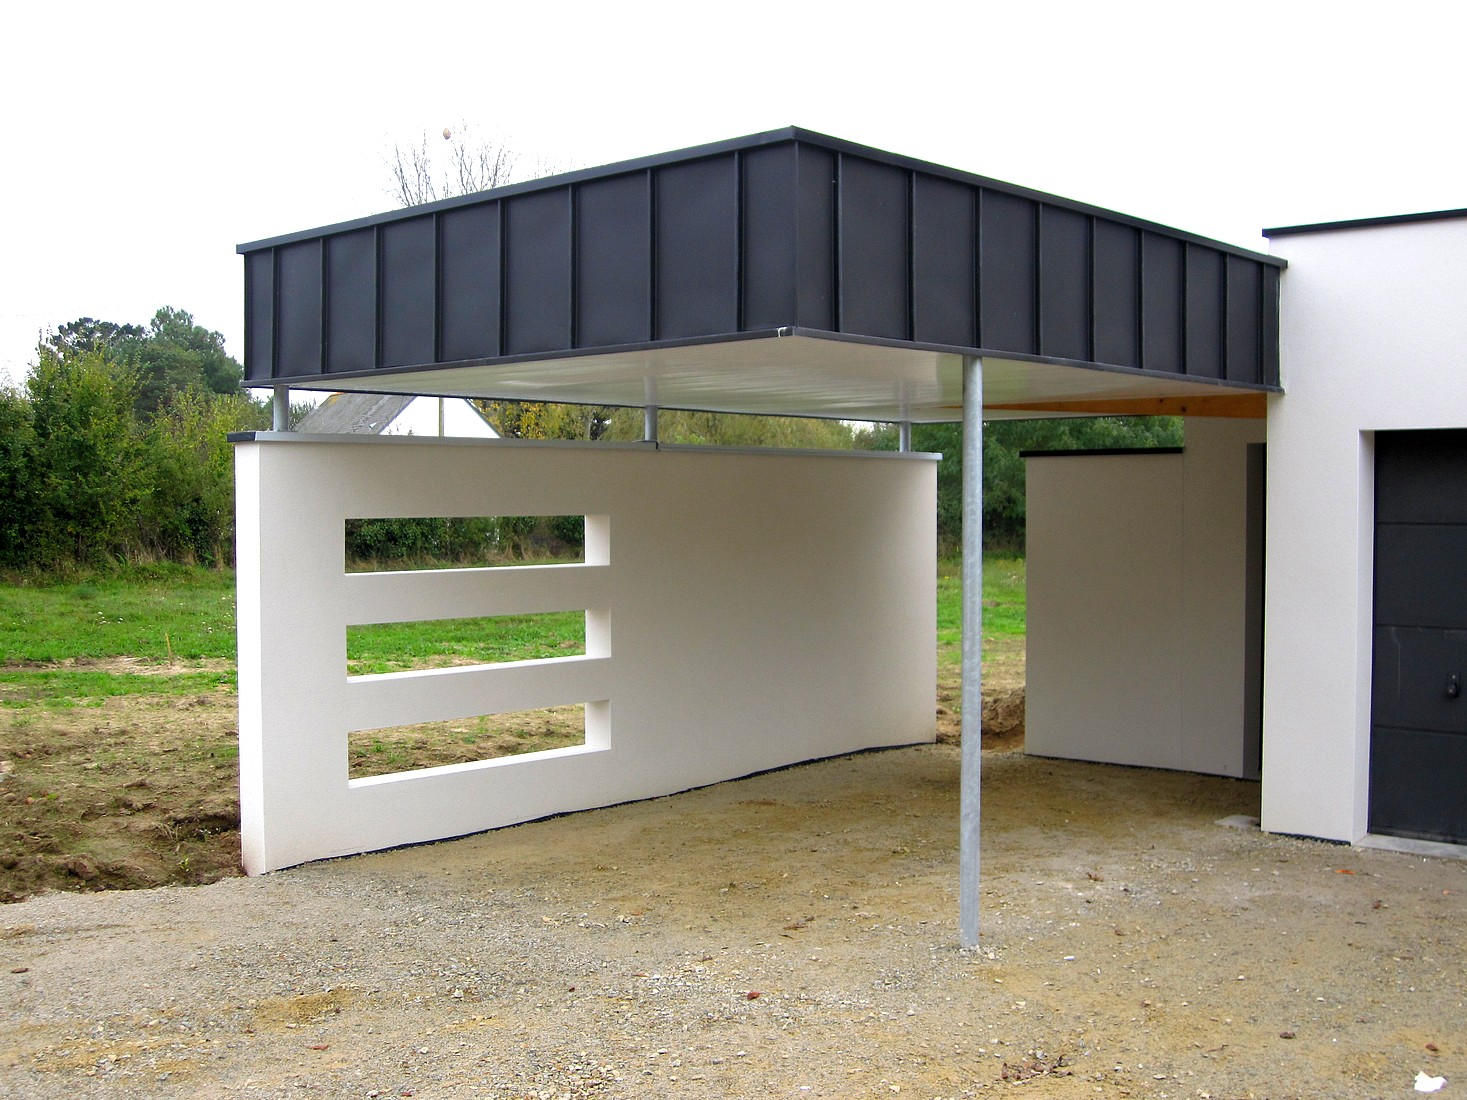 souvent carport fait maison uz31 montrealeast. Black Bedroom Furniture Sets. Home Design Ideas